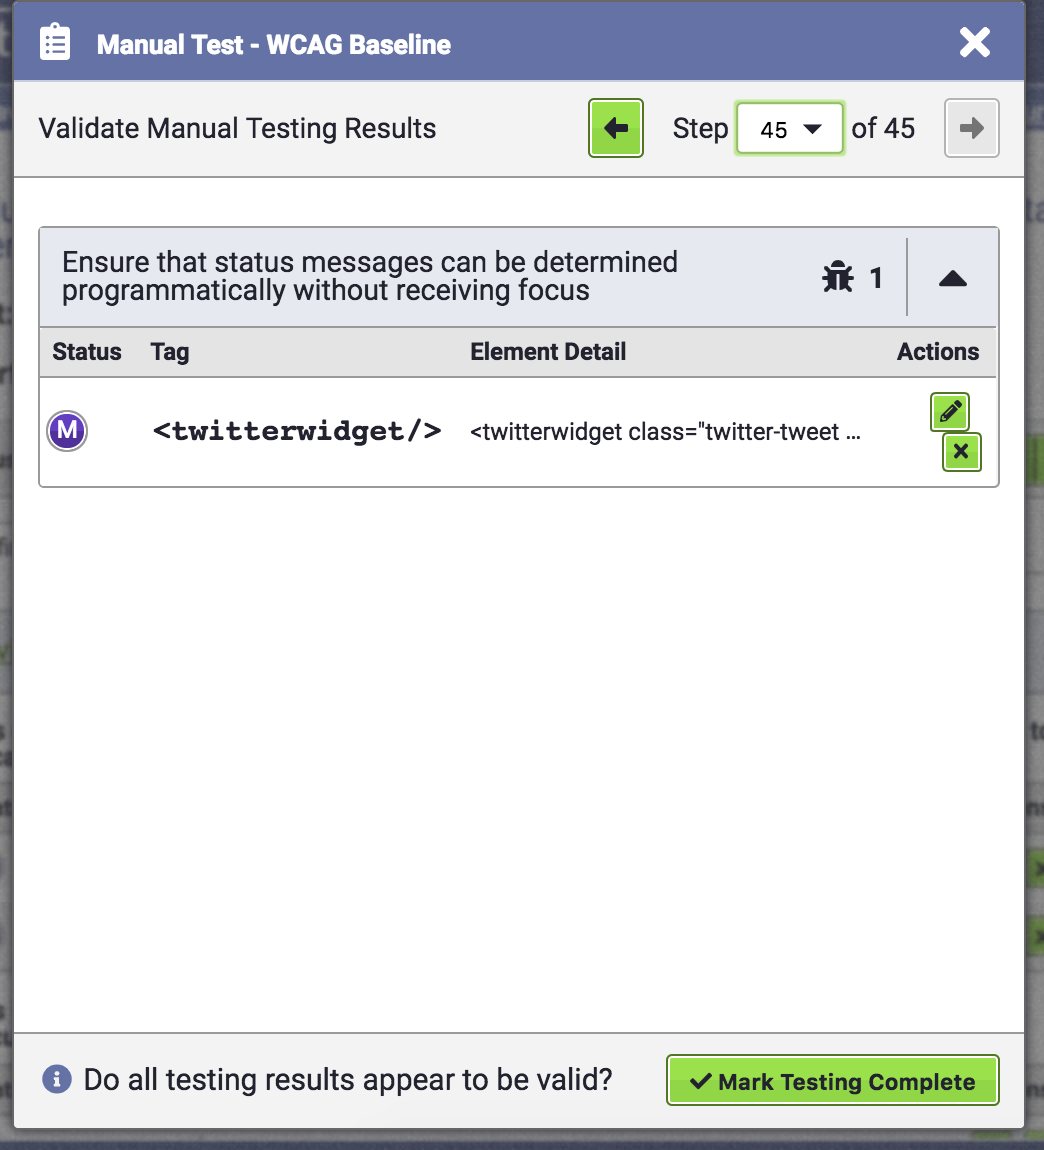 Manual Testing Validation screen